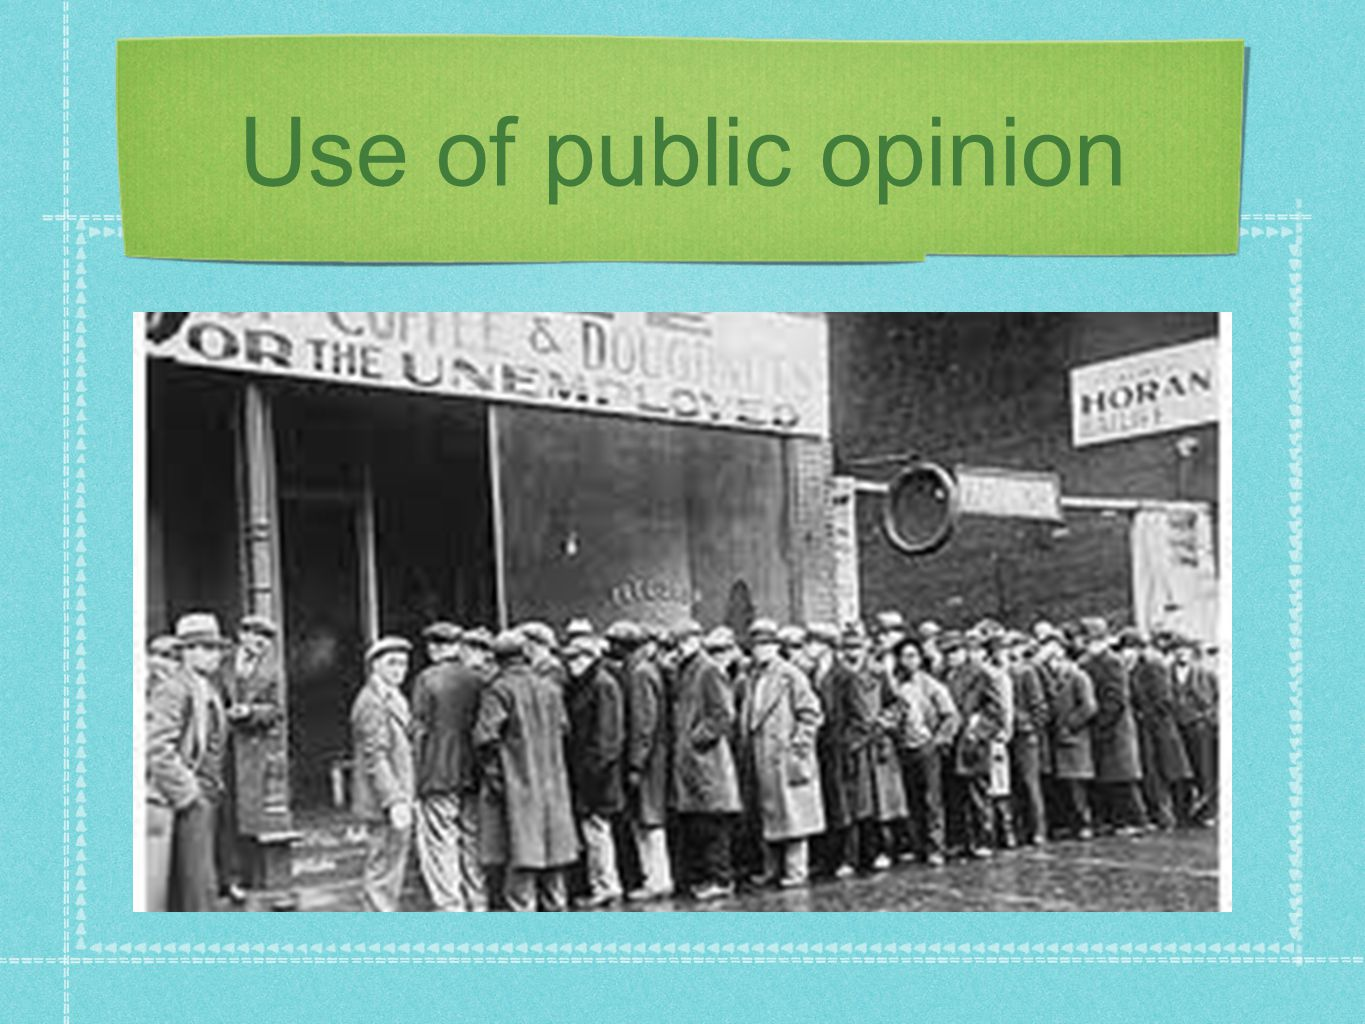 Use of public opinion